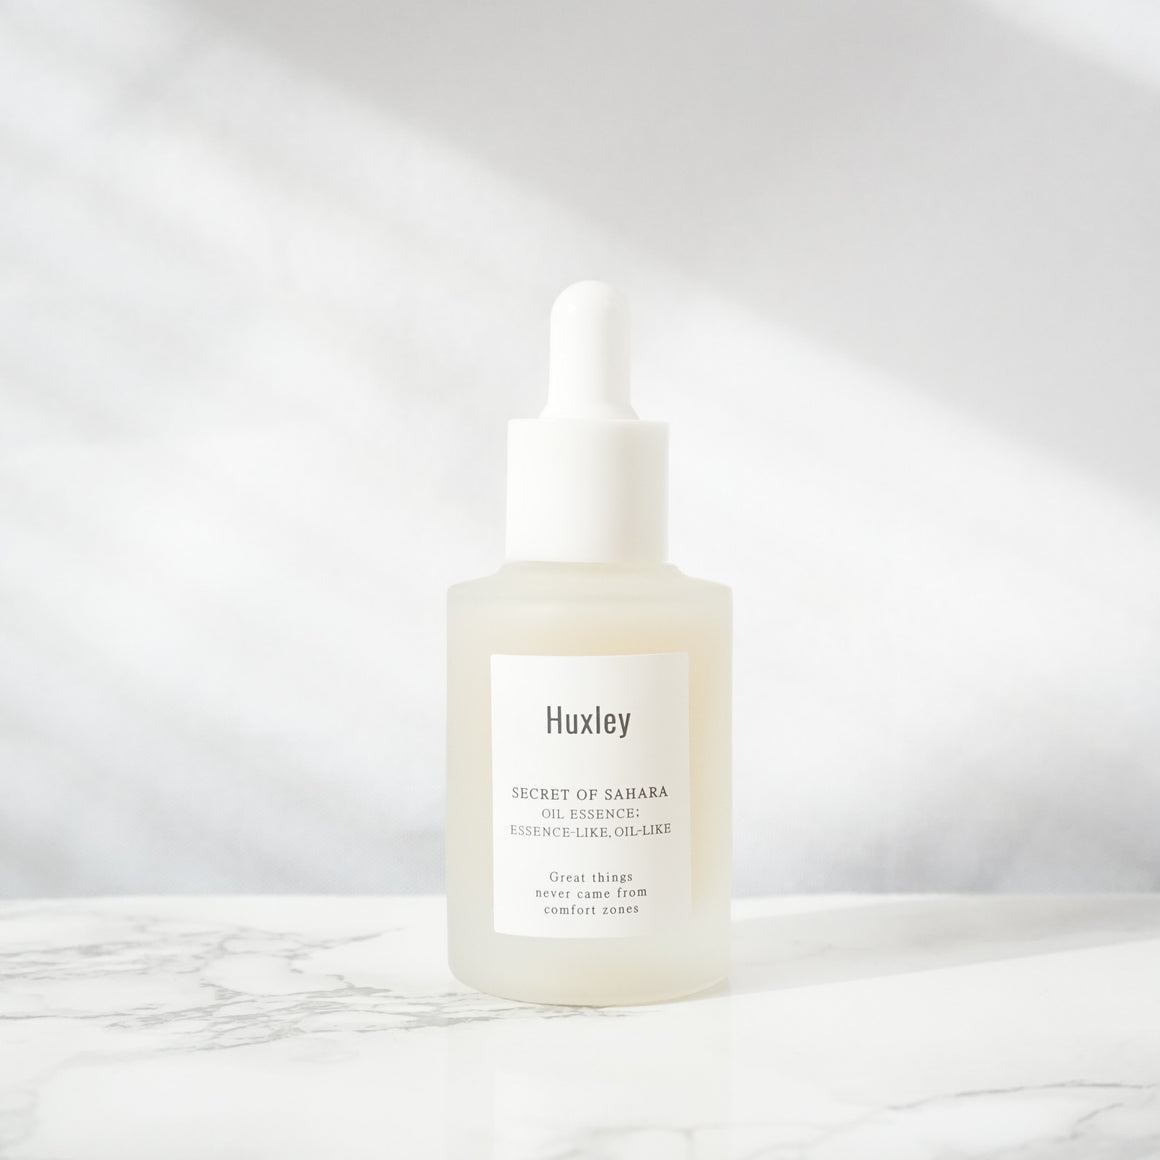 HUXLEY Oil Essence